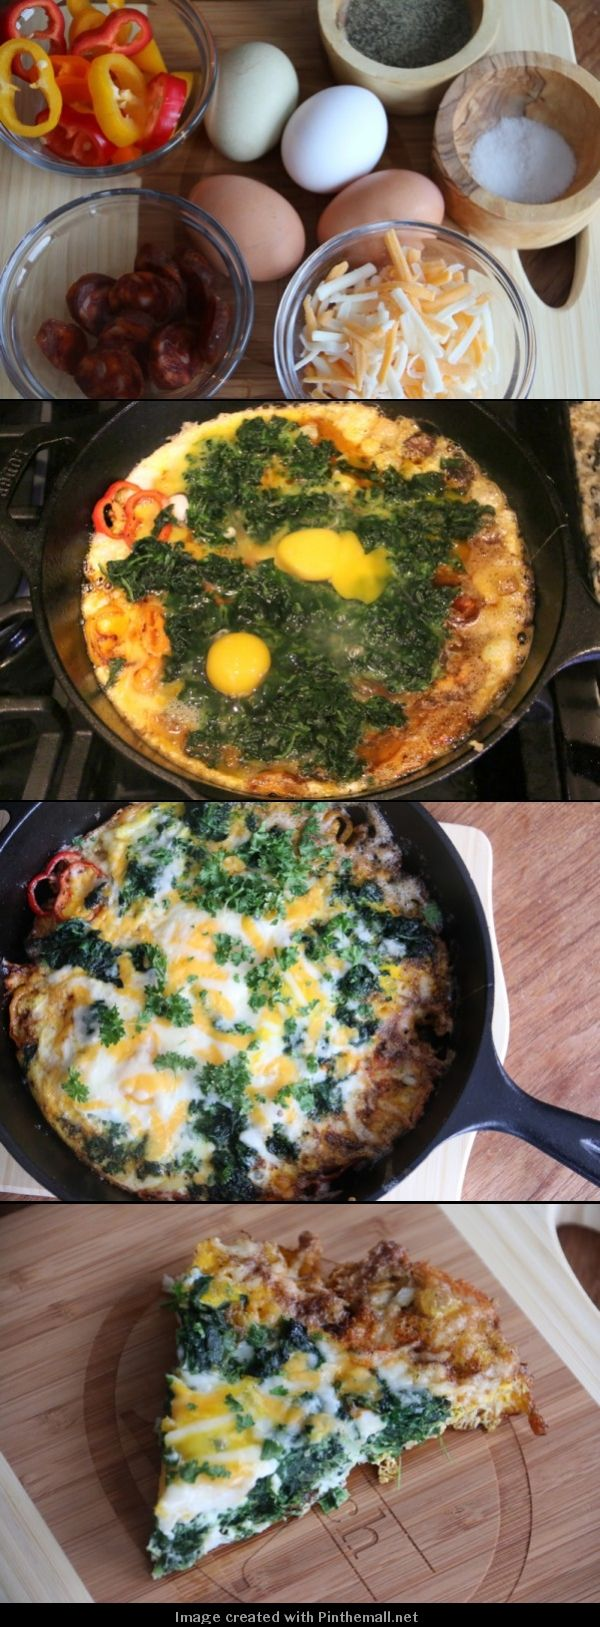 This looks absolutely beautiful (and delicious!) Spinach and Chorizo Frittata Recipe